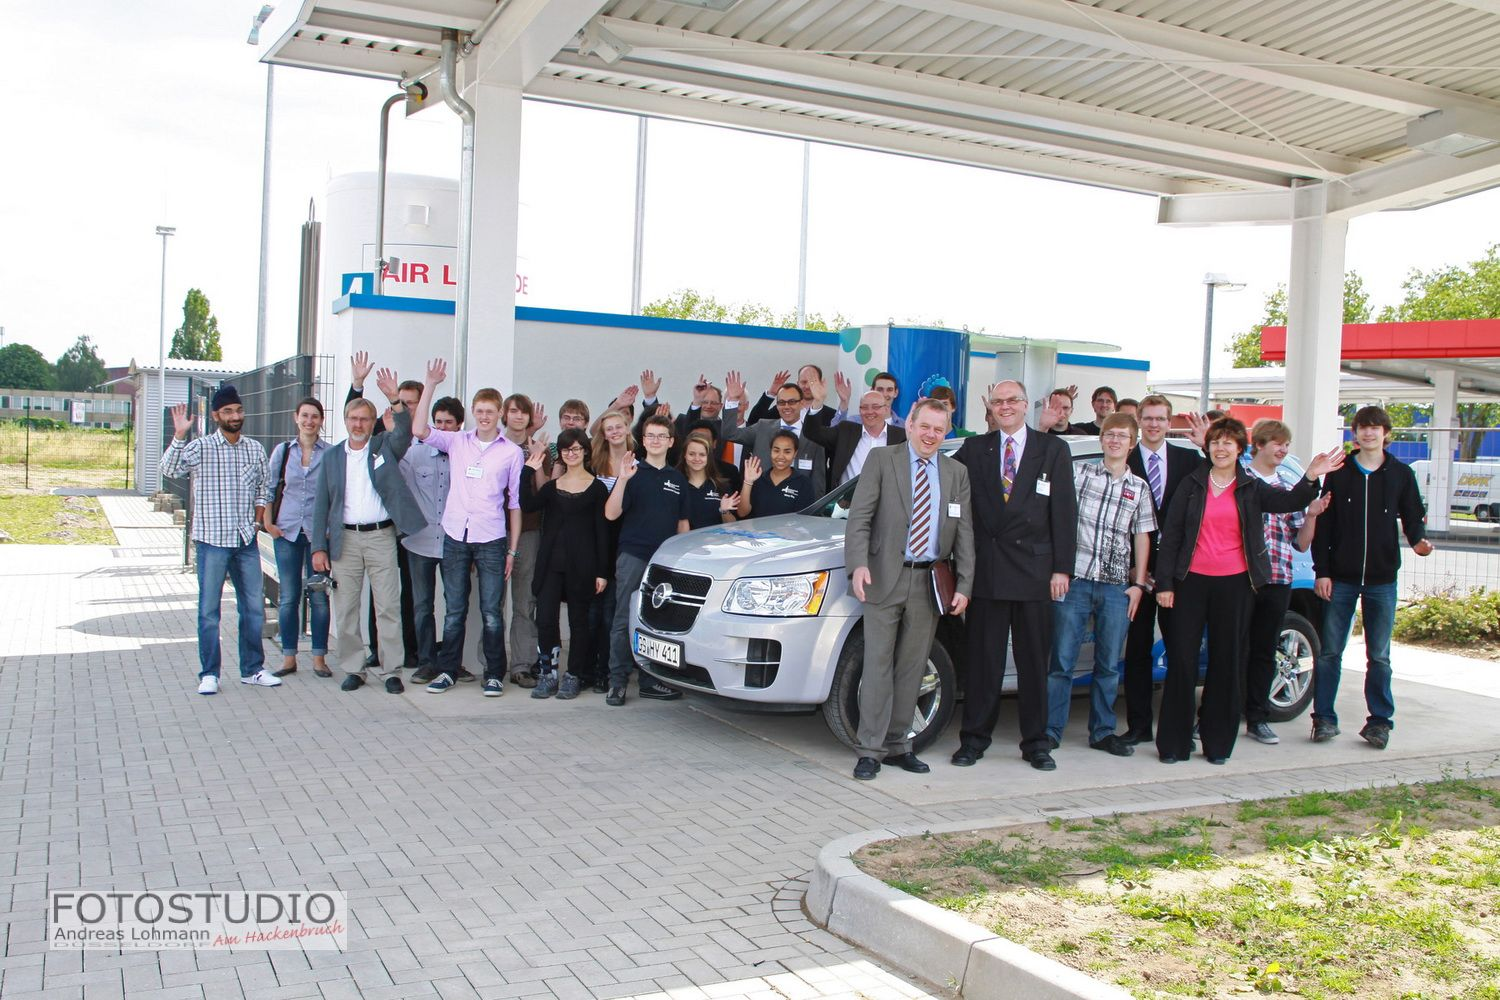 IMG_6960_FuelCellBox2012_FotoDesign-Lohmann